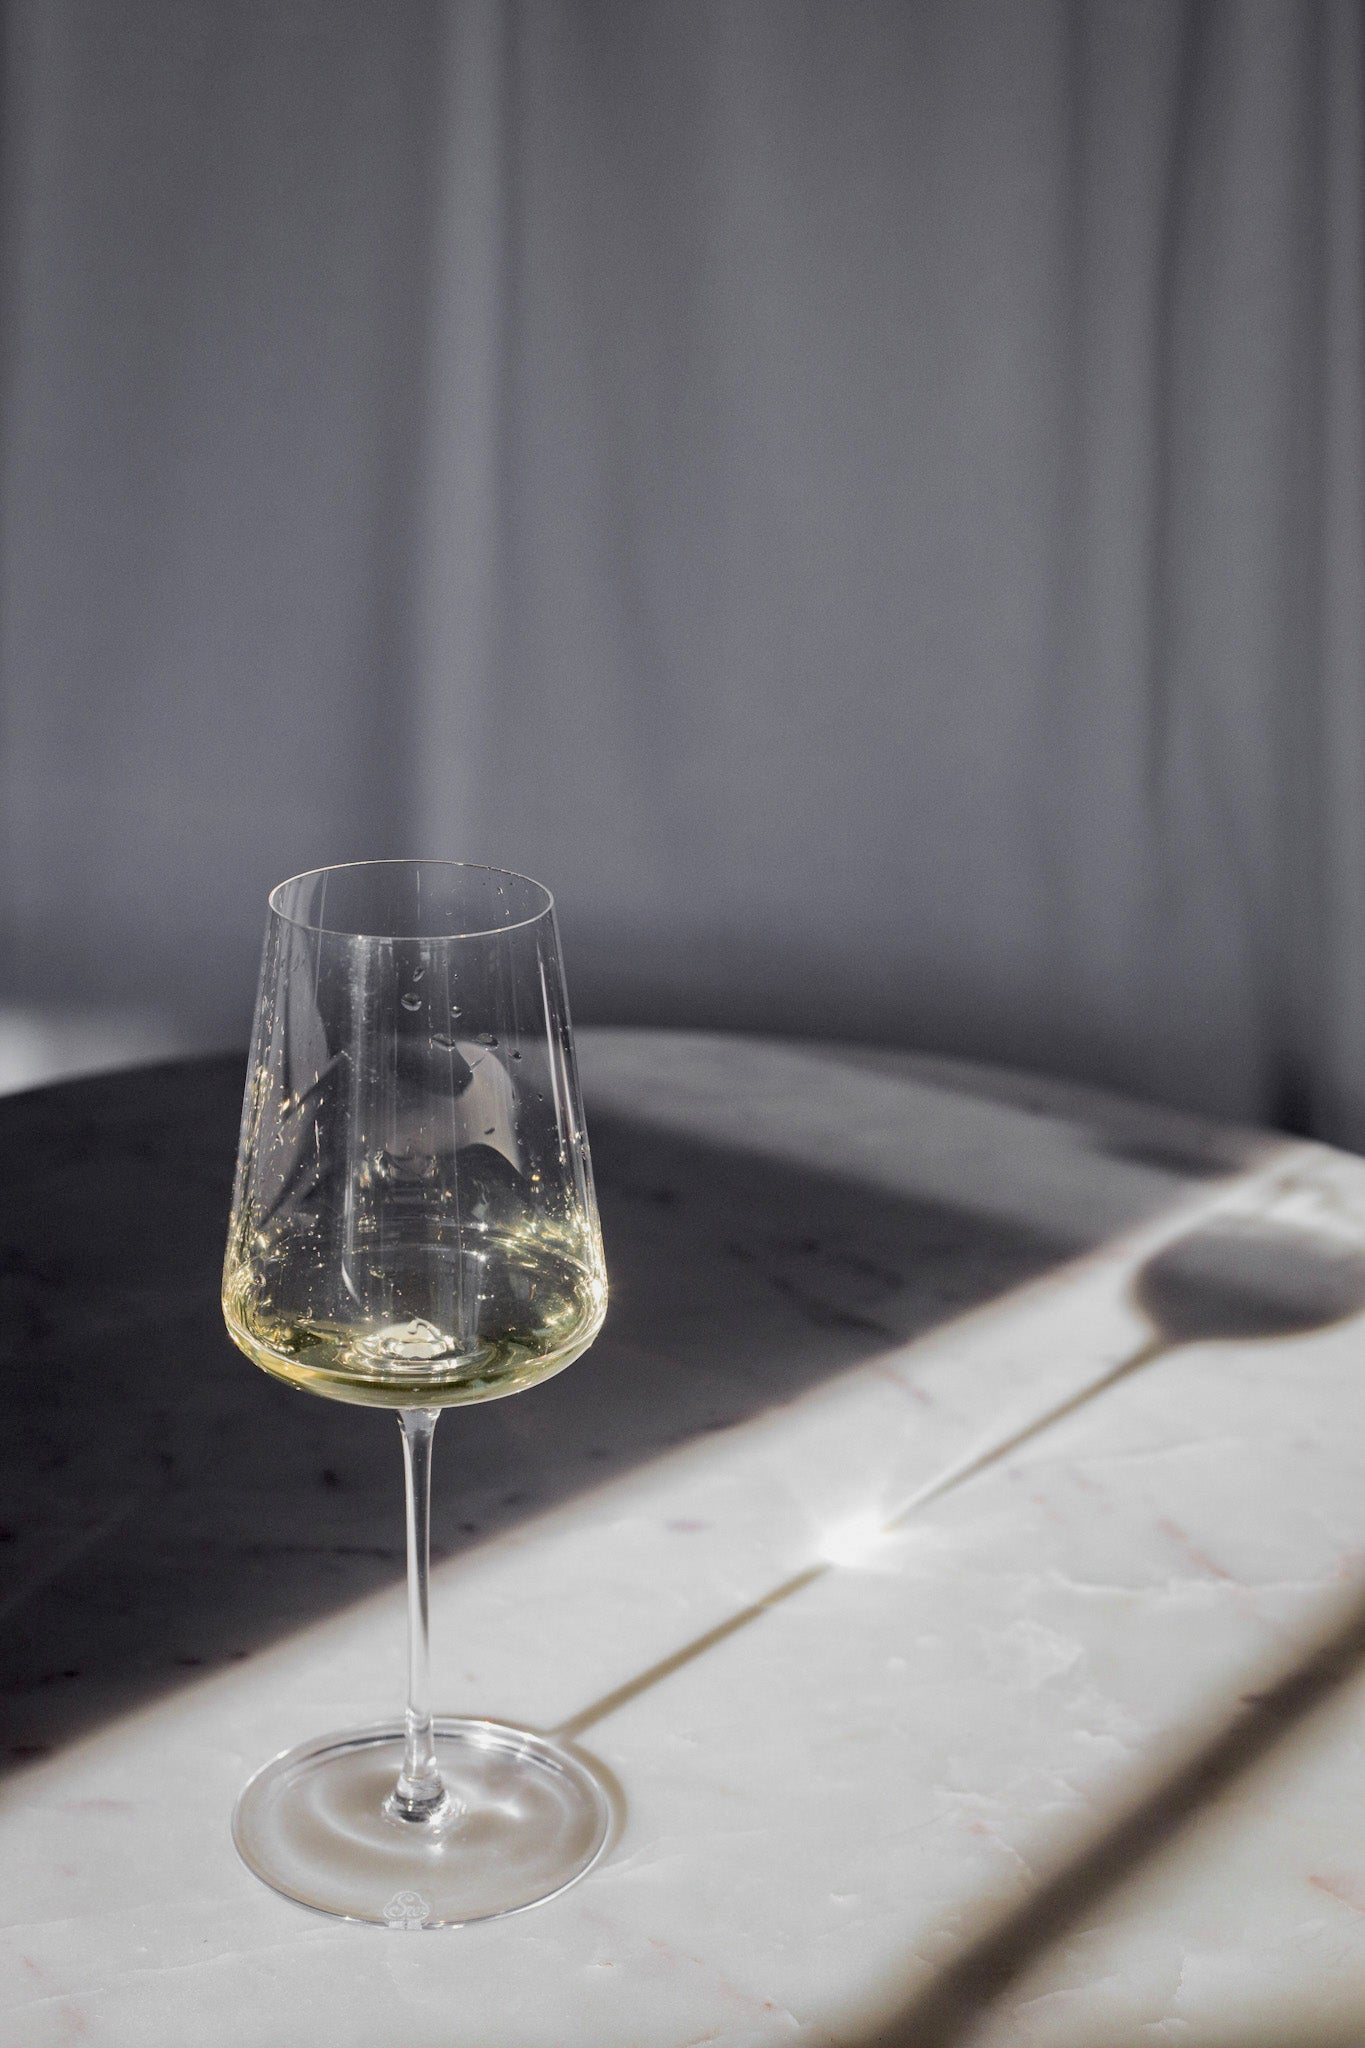 The White' Wine Glass with white wine